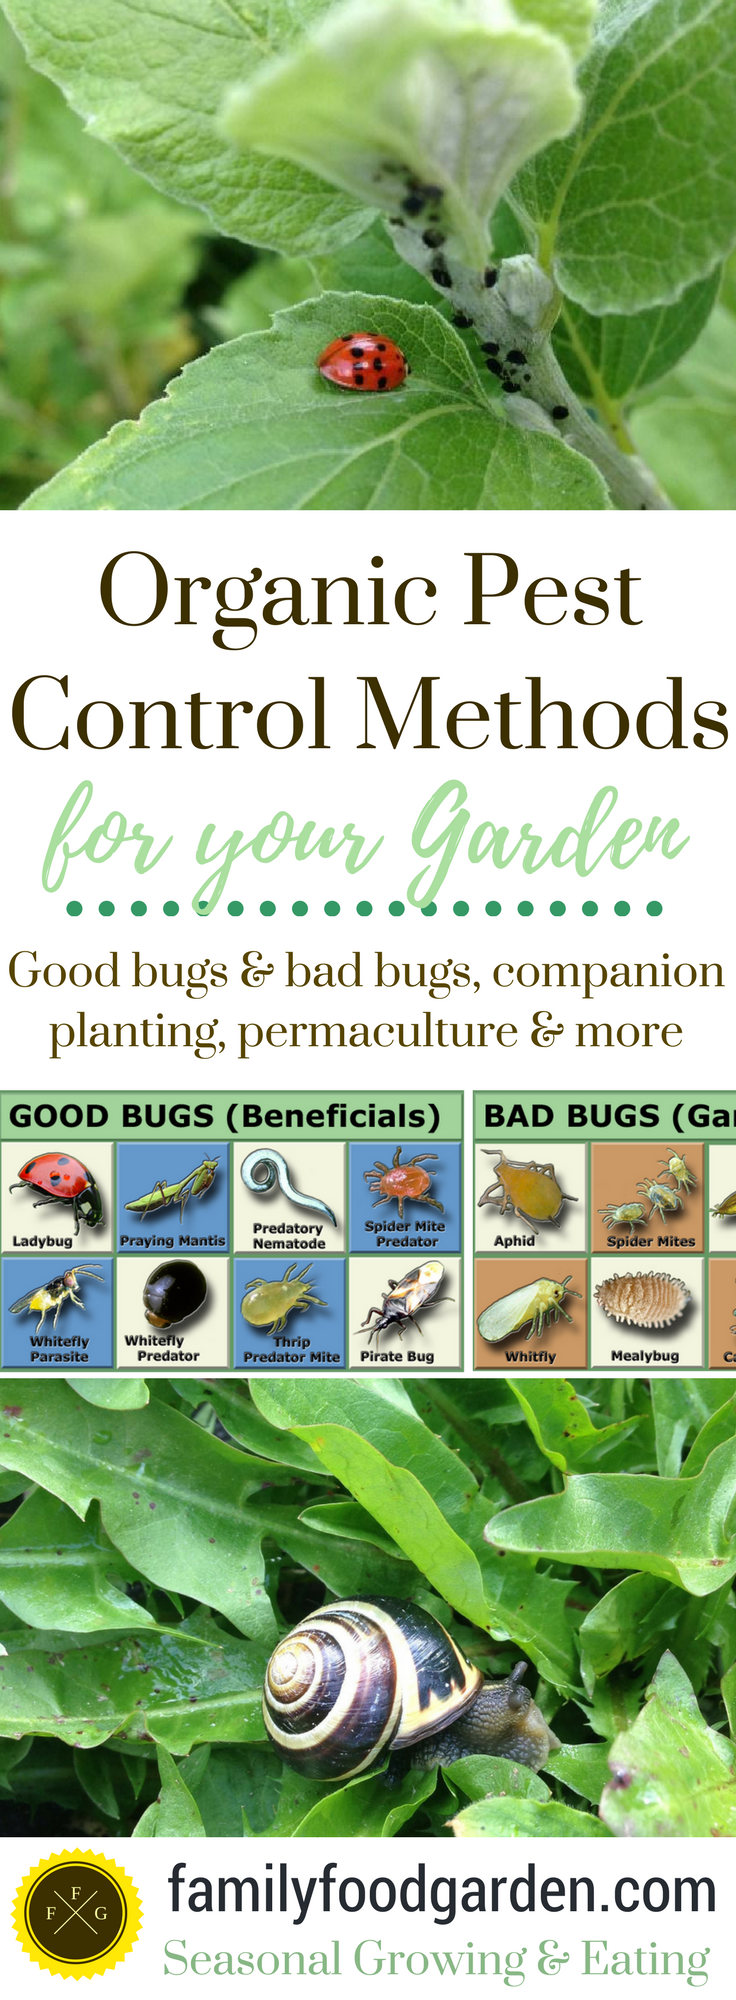 Organic Pest Control Methods - Family Food Garden